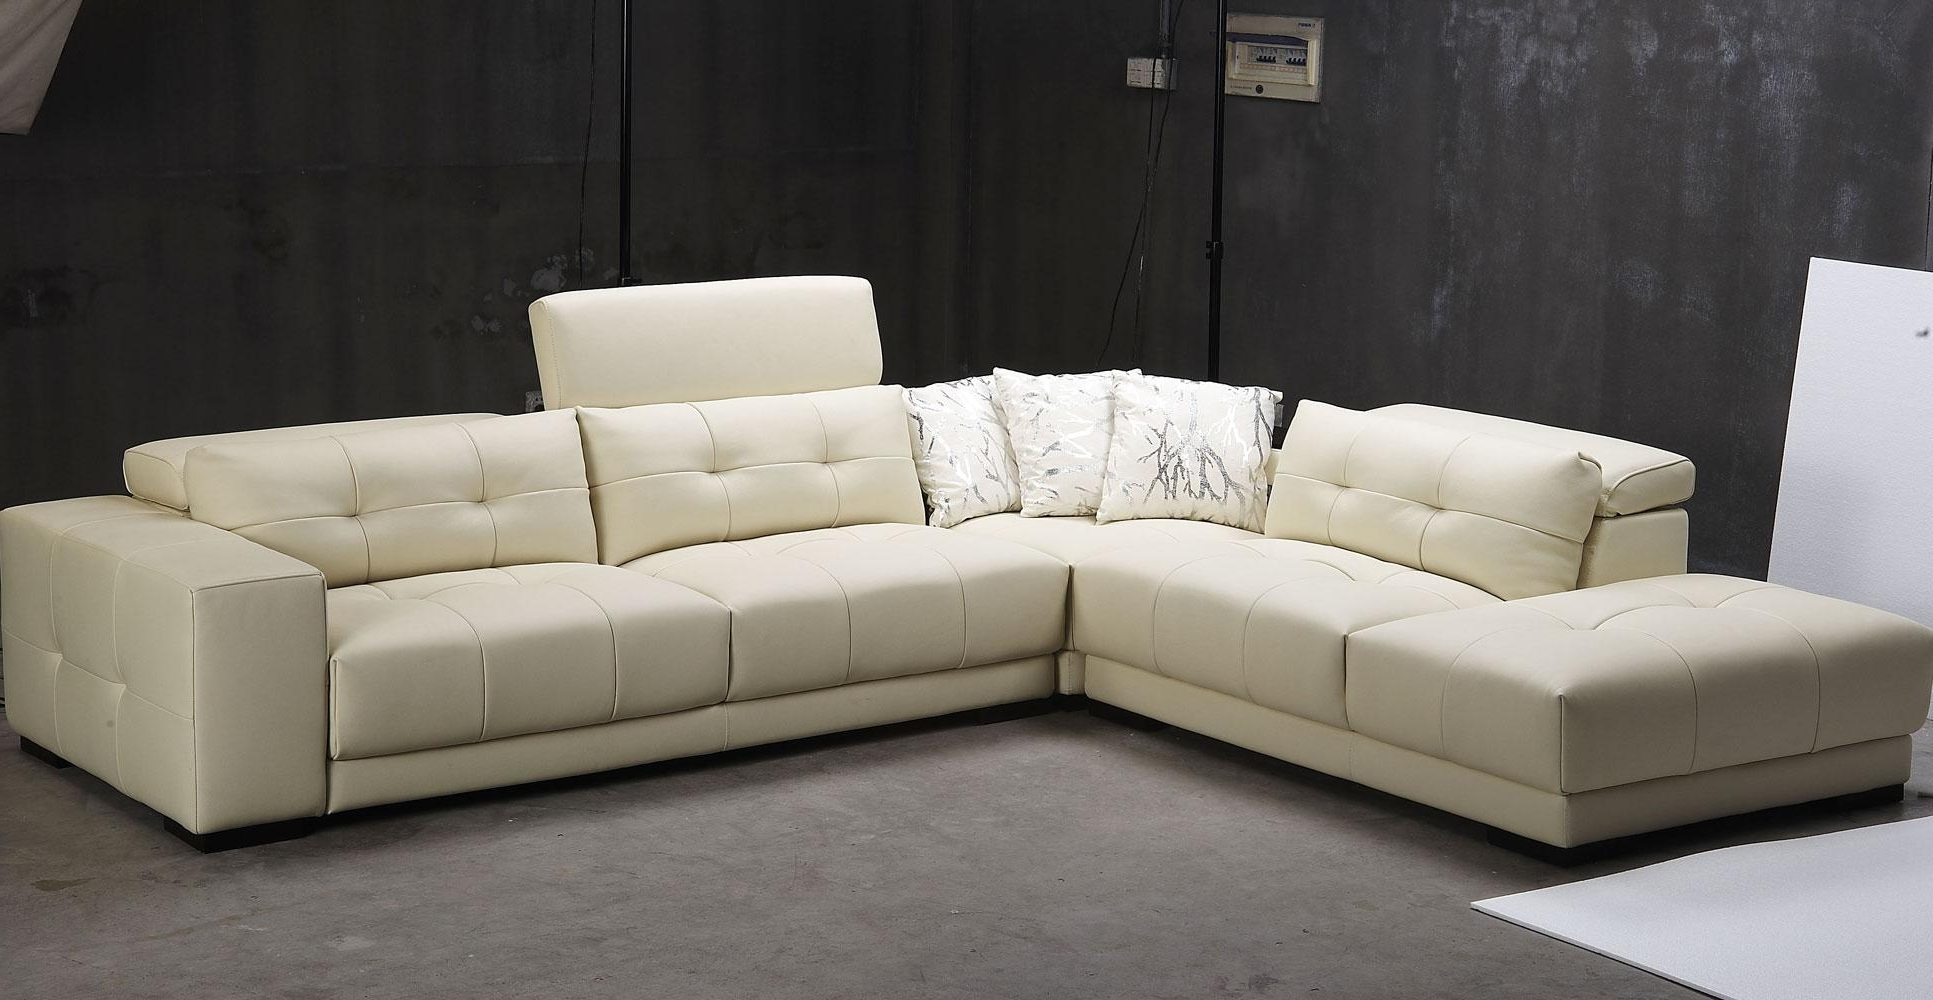 White Leather Sectionals With Chaise Inside Newest Best Modern 3 Piece White Leather Sectional Sleeper Sofa With (View 13 of 15)